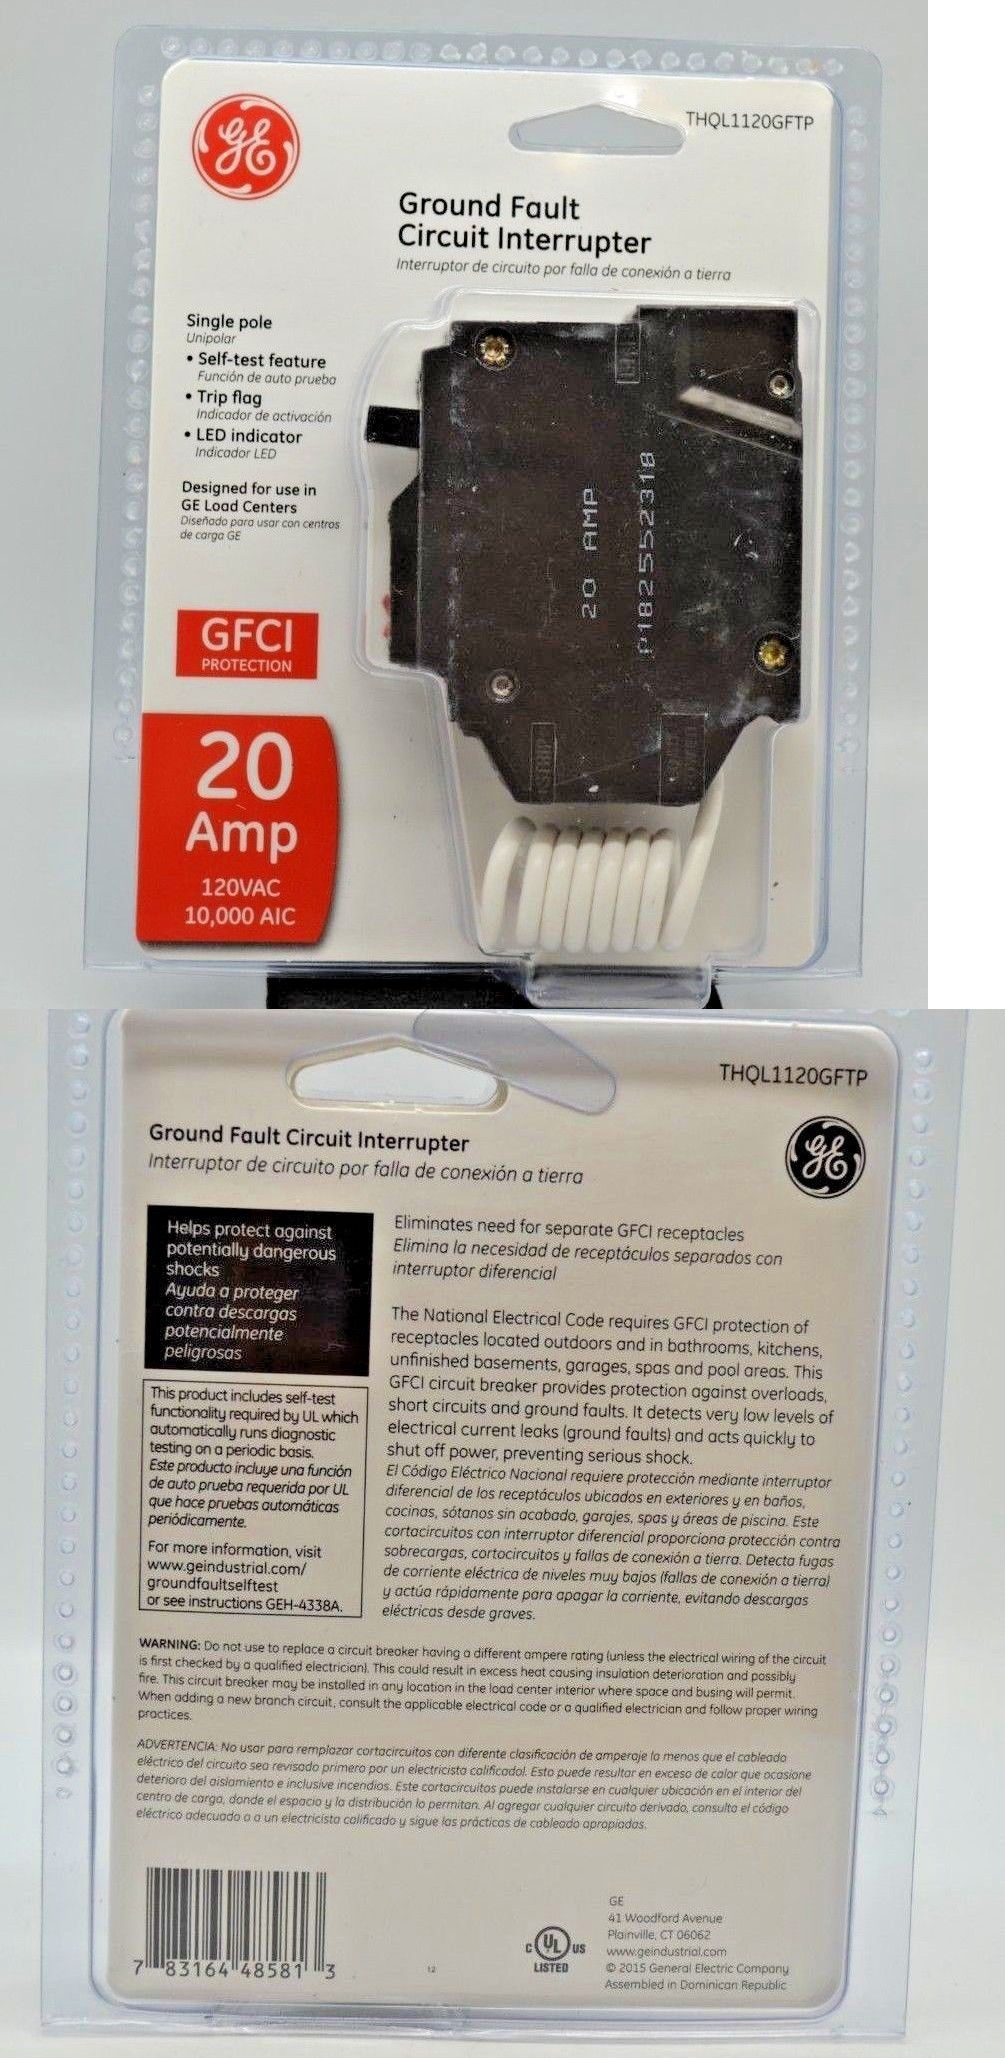 Circuit Breakers and Fuse Bo 20596: Ge Gfci Circuit Breaker ... on led fuse, ceiling fan fuse, dc fuse, heater fuse, power fuse, receptacle fuse, combination fuse,